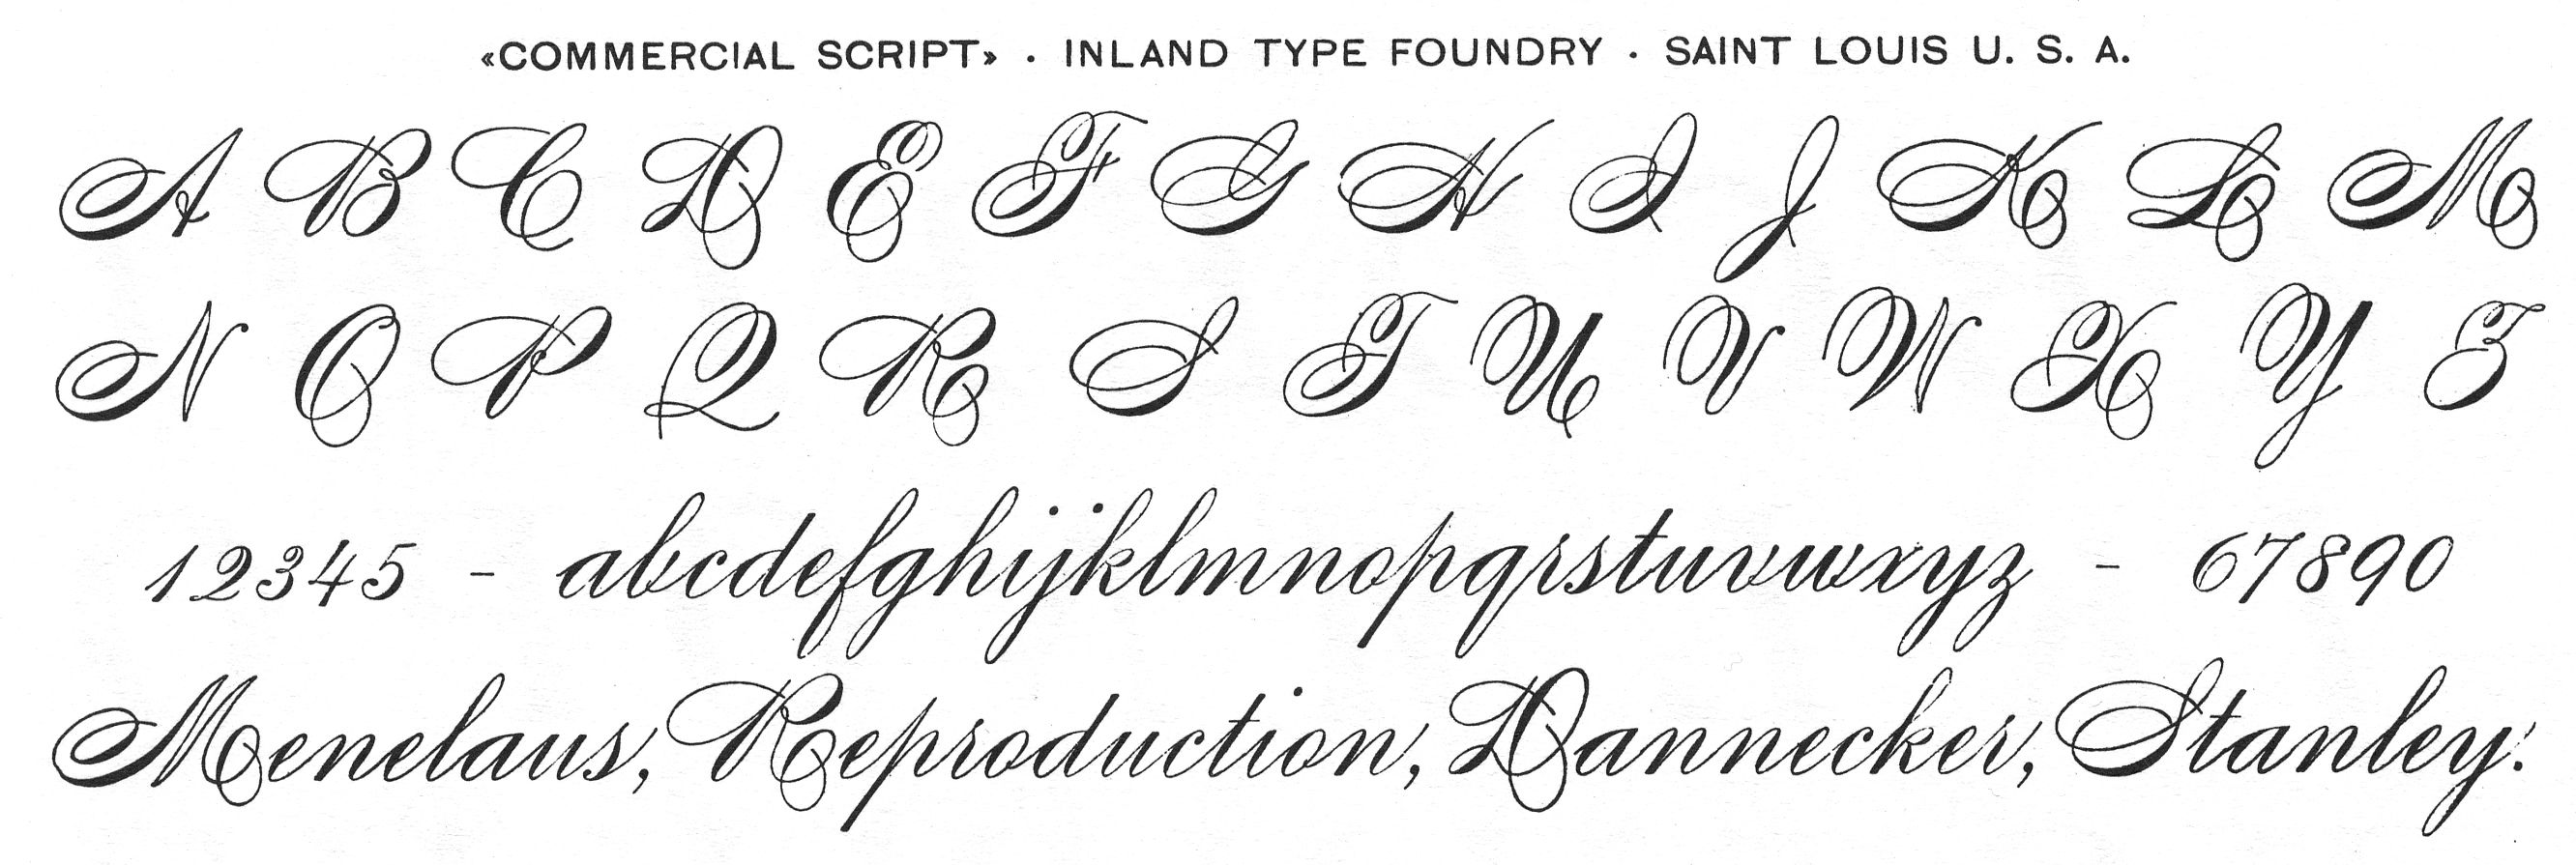 Worksheet Cursive Handwriting Guide cursive handwriting versus spencerian script 1897 commercial script